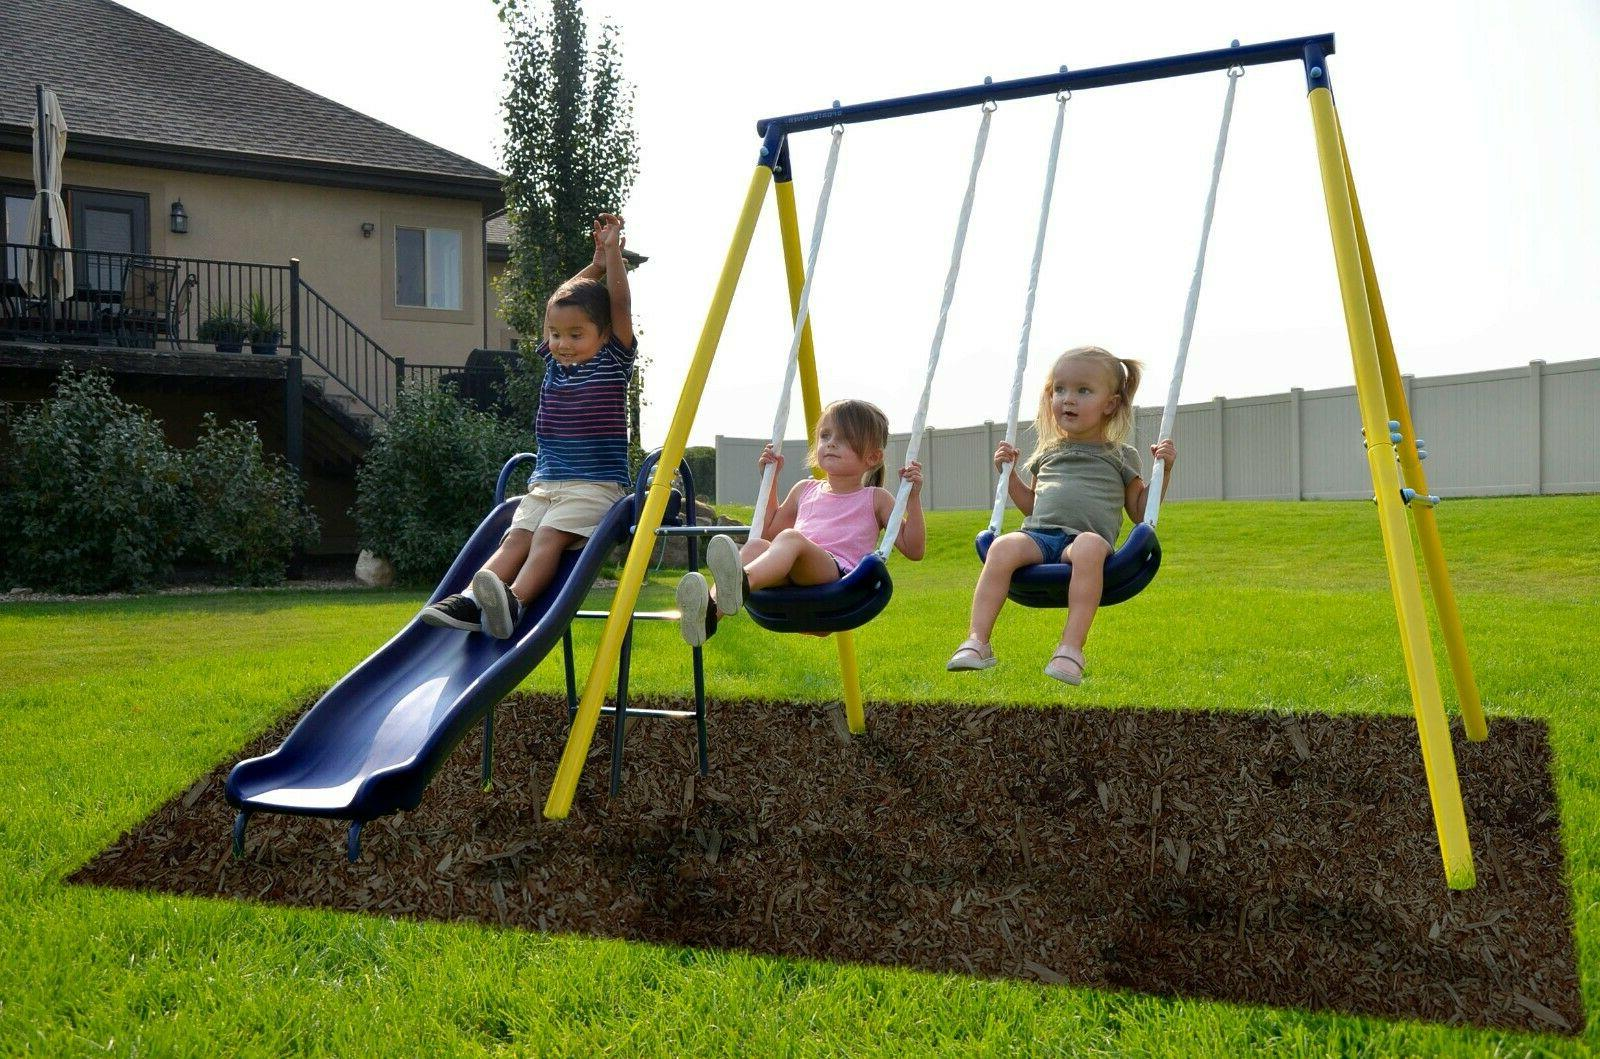 Fun Set Kids Slide Backyard Space Saver